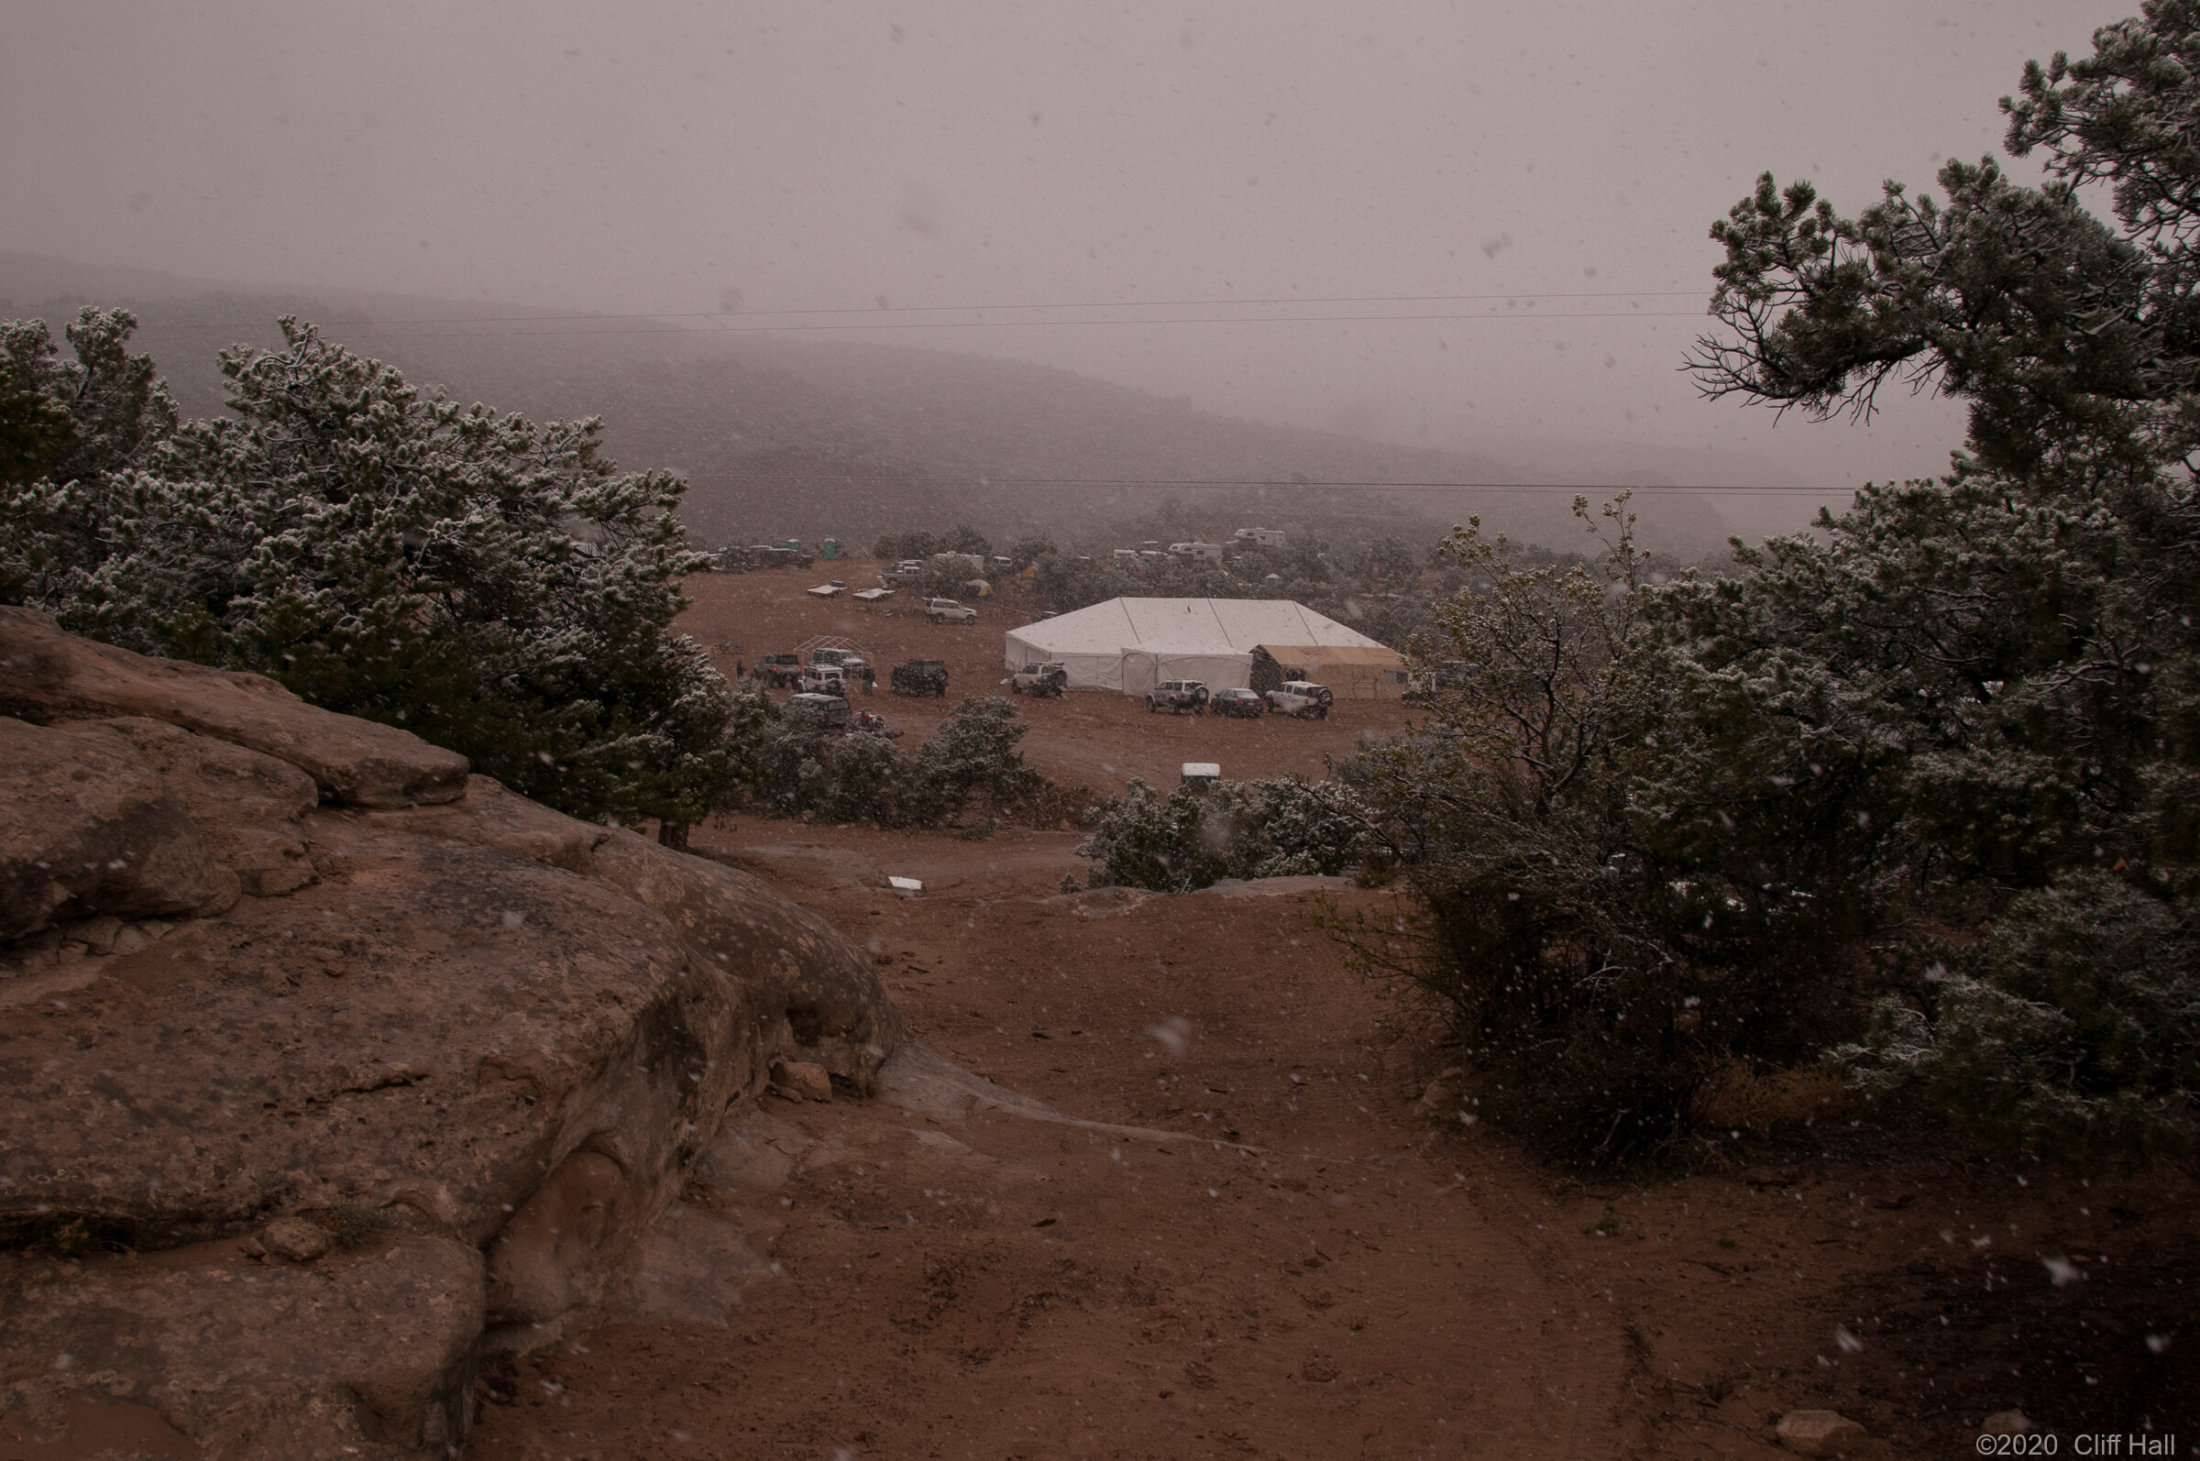 Main Tent for Cruise Moab